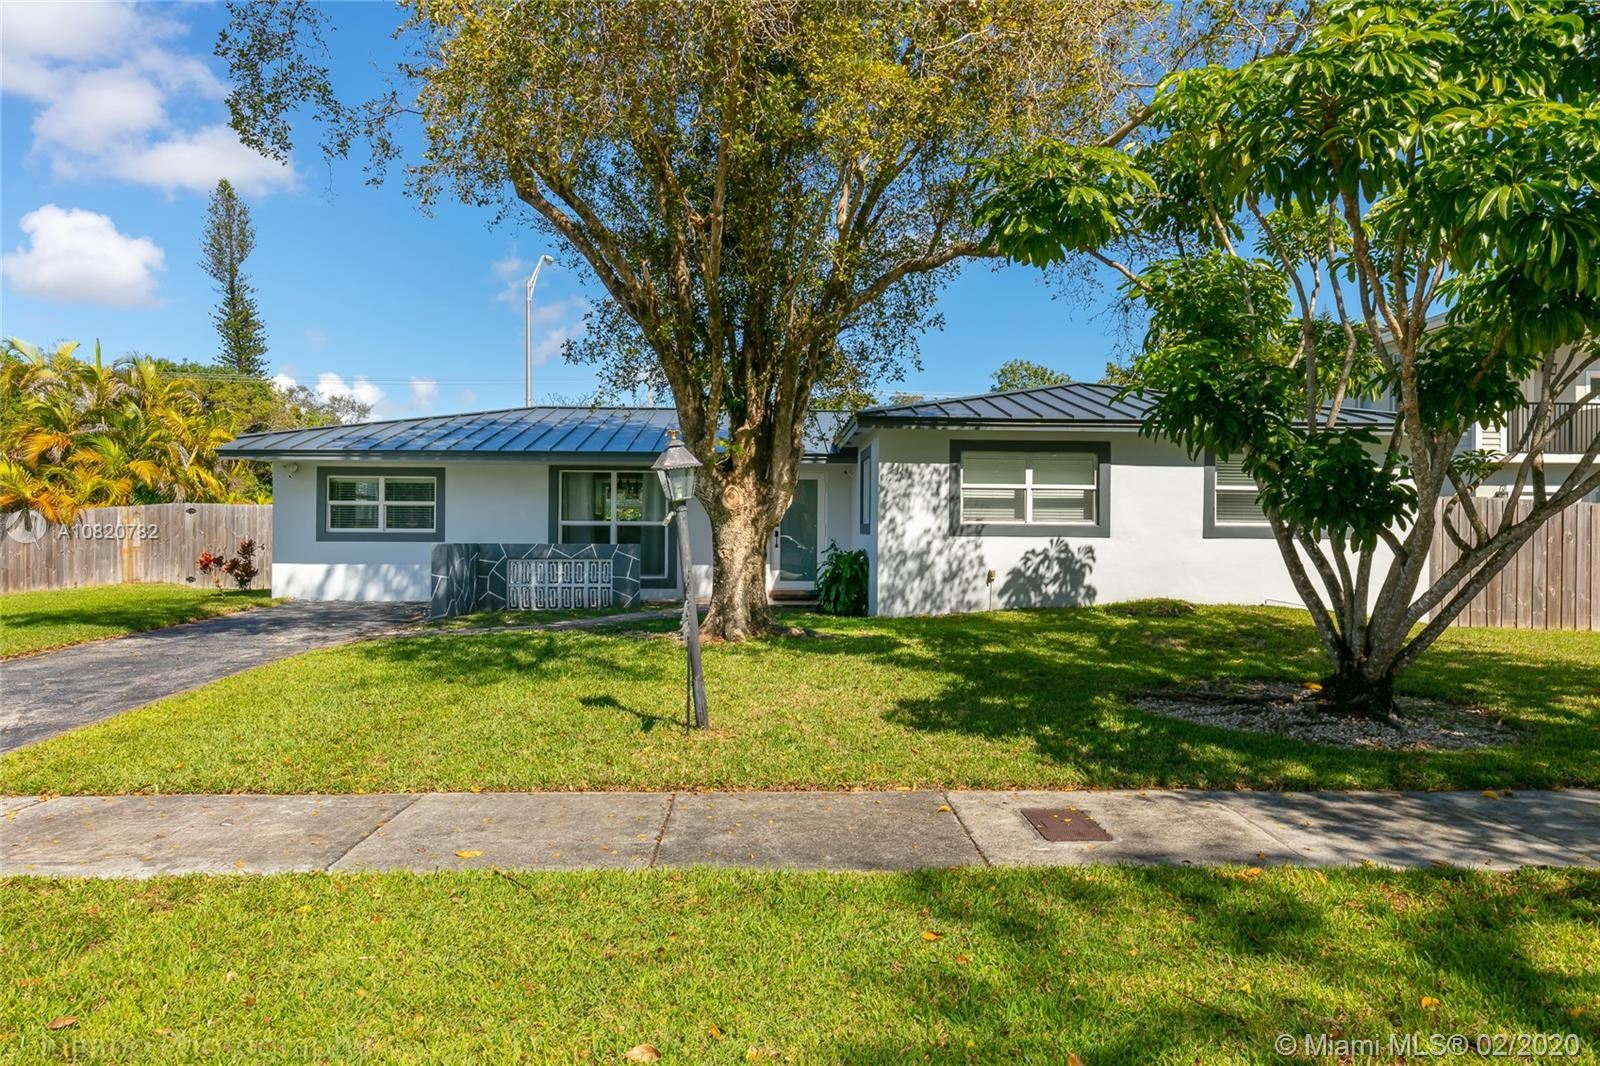 10341 SW 107th St, Miami, FL 33176 - #: A10820782